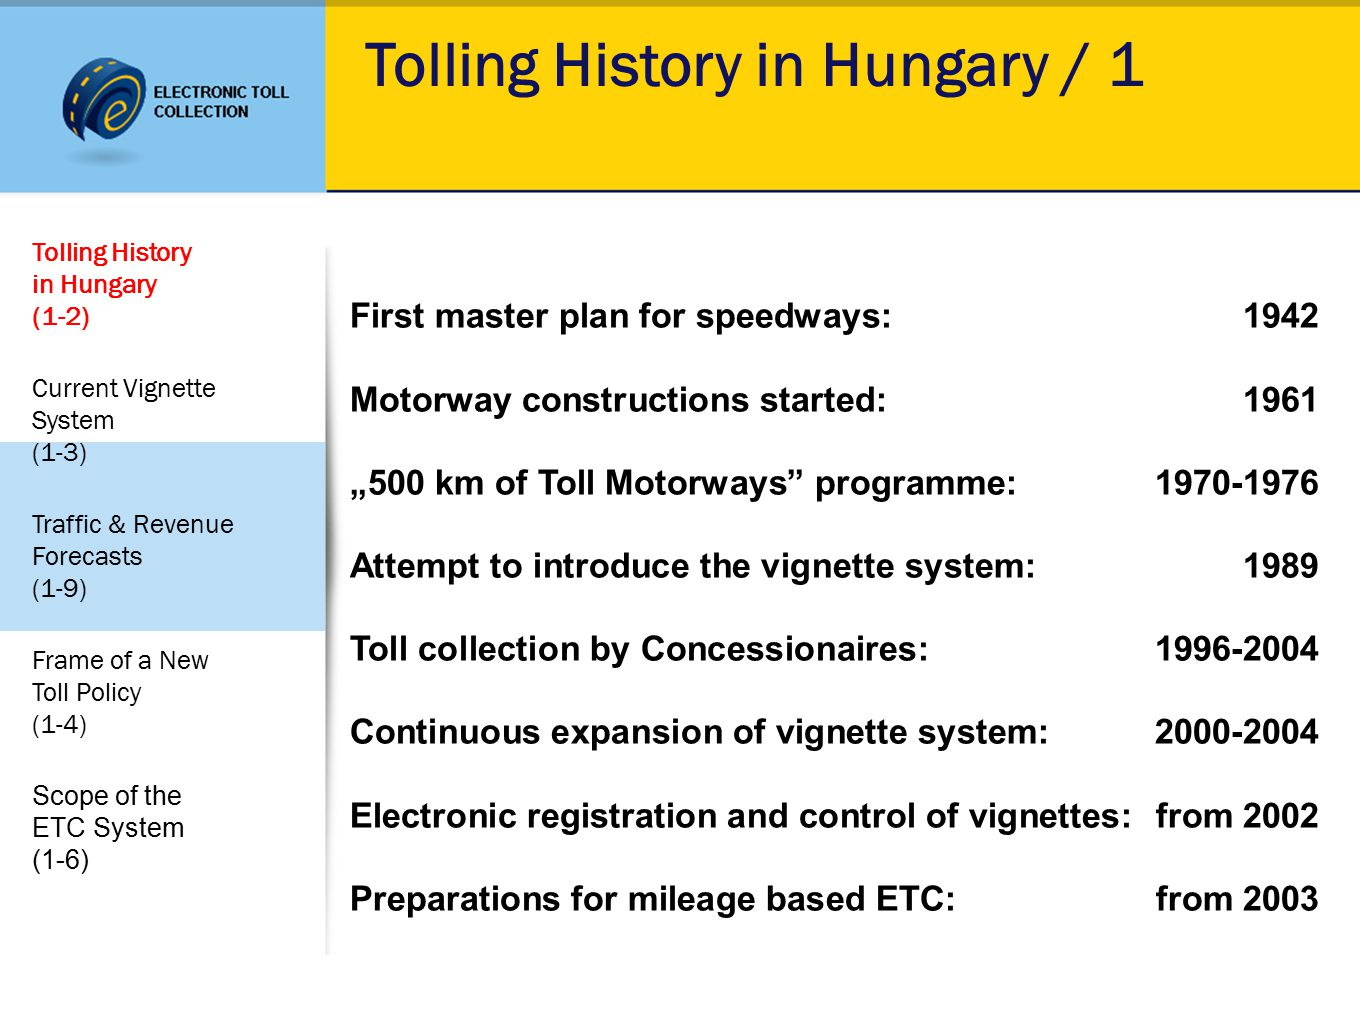 "Tolling History in Hungary / 1 First master plan for speedways:1942 Motorway constructions started:1961 ""500 km of Toll Motorways programme:1970-1976 Attempt to introduce the vignette system:1989 Toll collection by Concessionaires:1996-2004 Continuous expansion of vignette system:2000-2004 Electronic registration and control of vignettes:from 2002 Preparations for mileage based ETC:from 2003 Tolling History in Hungary (1-2) Current Vignette System (1-3) Traffic & Revenue Forecasts (1-9) Frame of a New Toll Policy (1-4) Scope of the ETC System (1-6)"